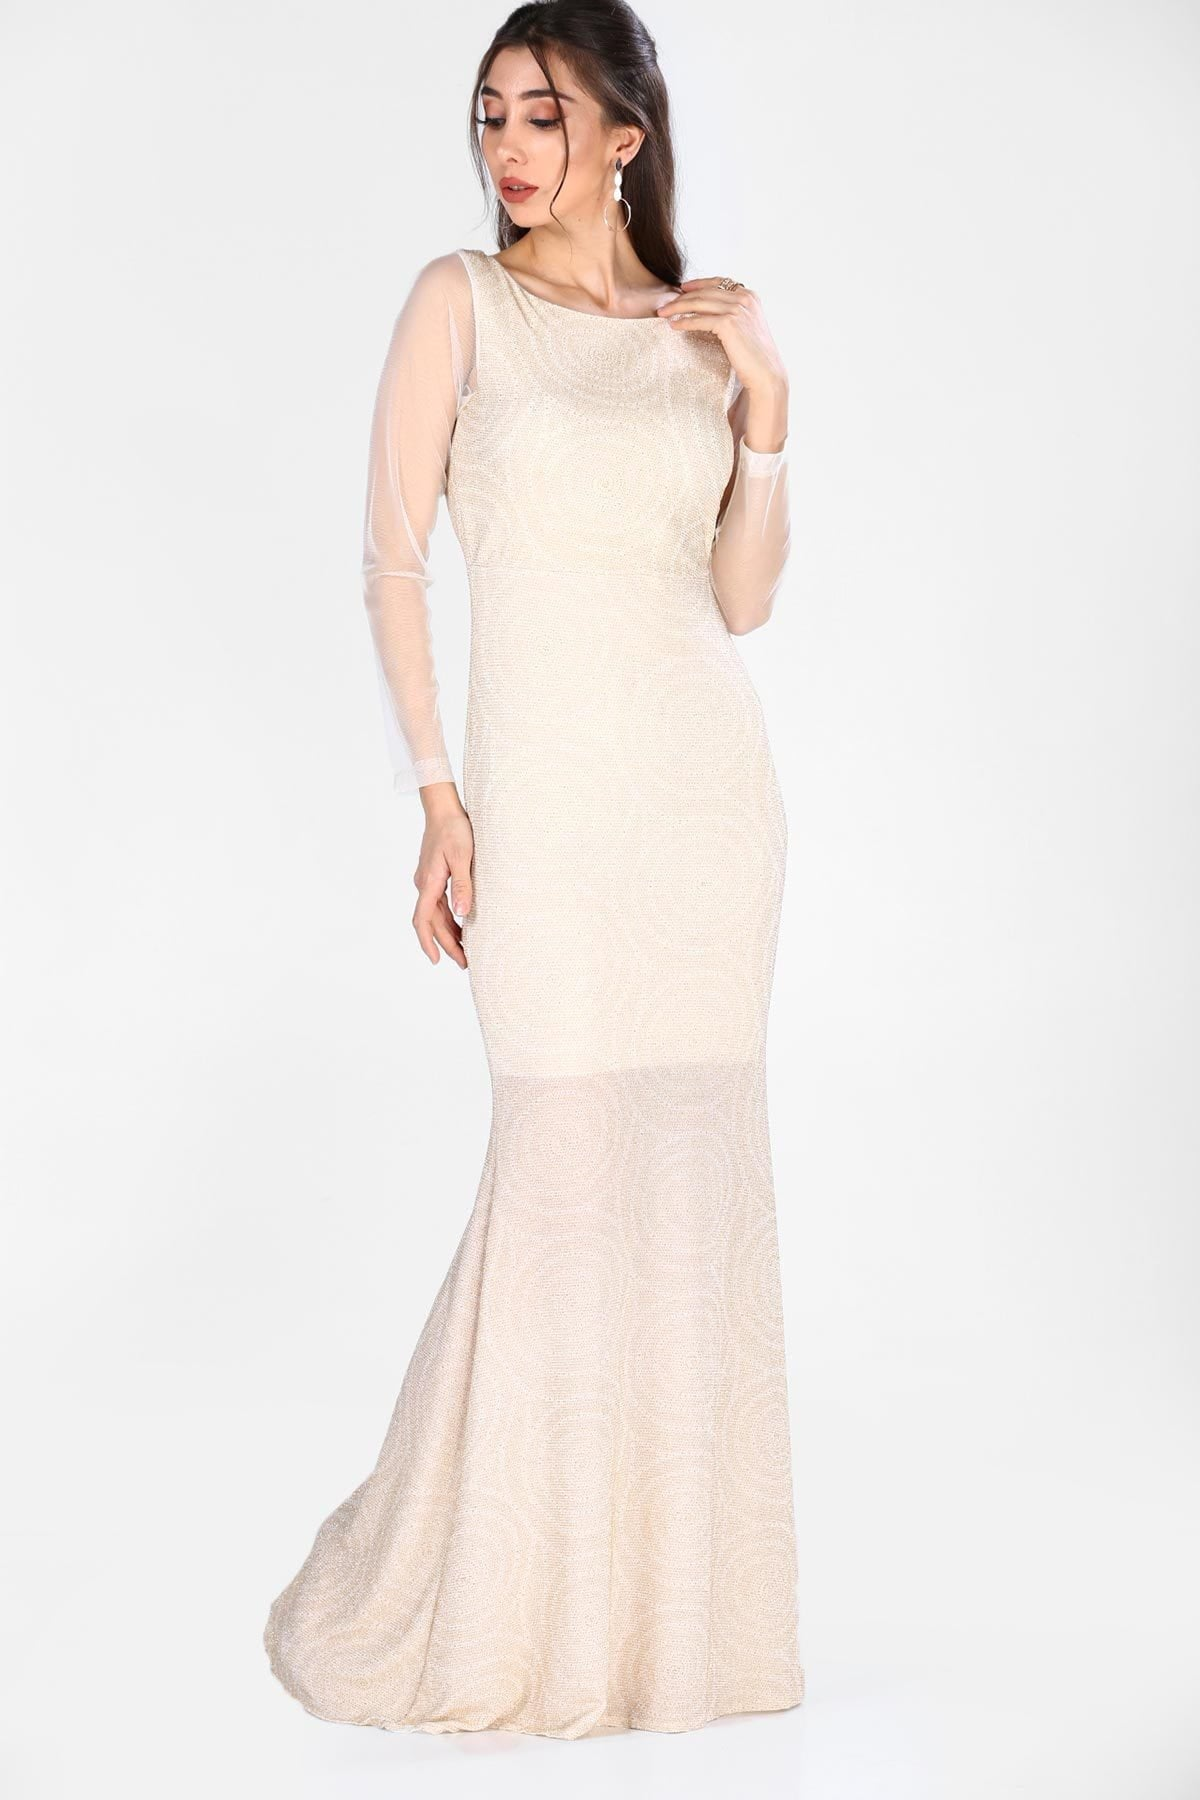 Women's Tulle Embroidered Sleeves Silvery Ecru Evening Dress